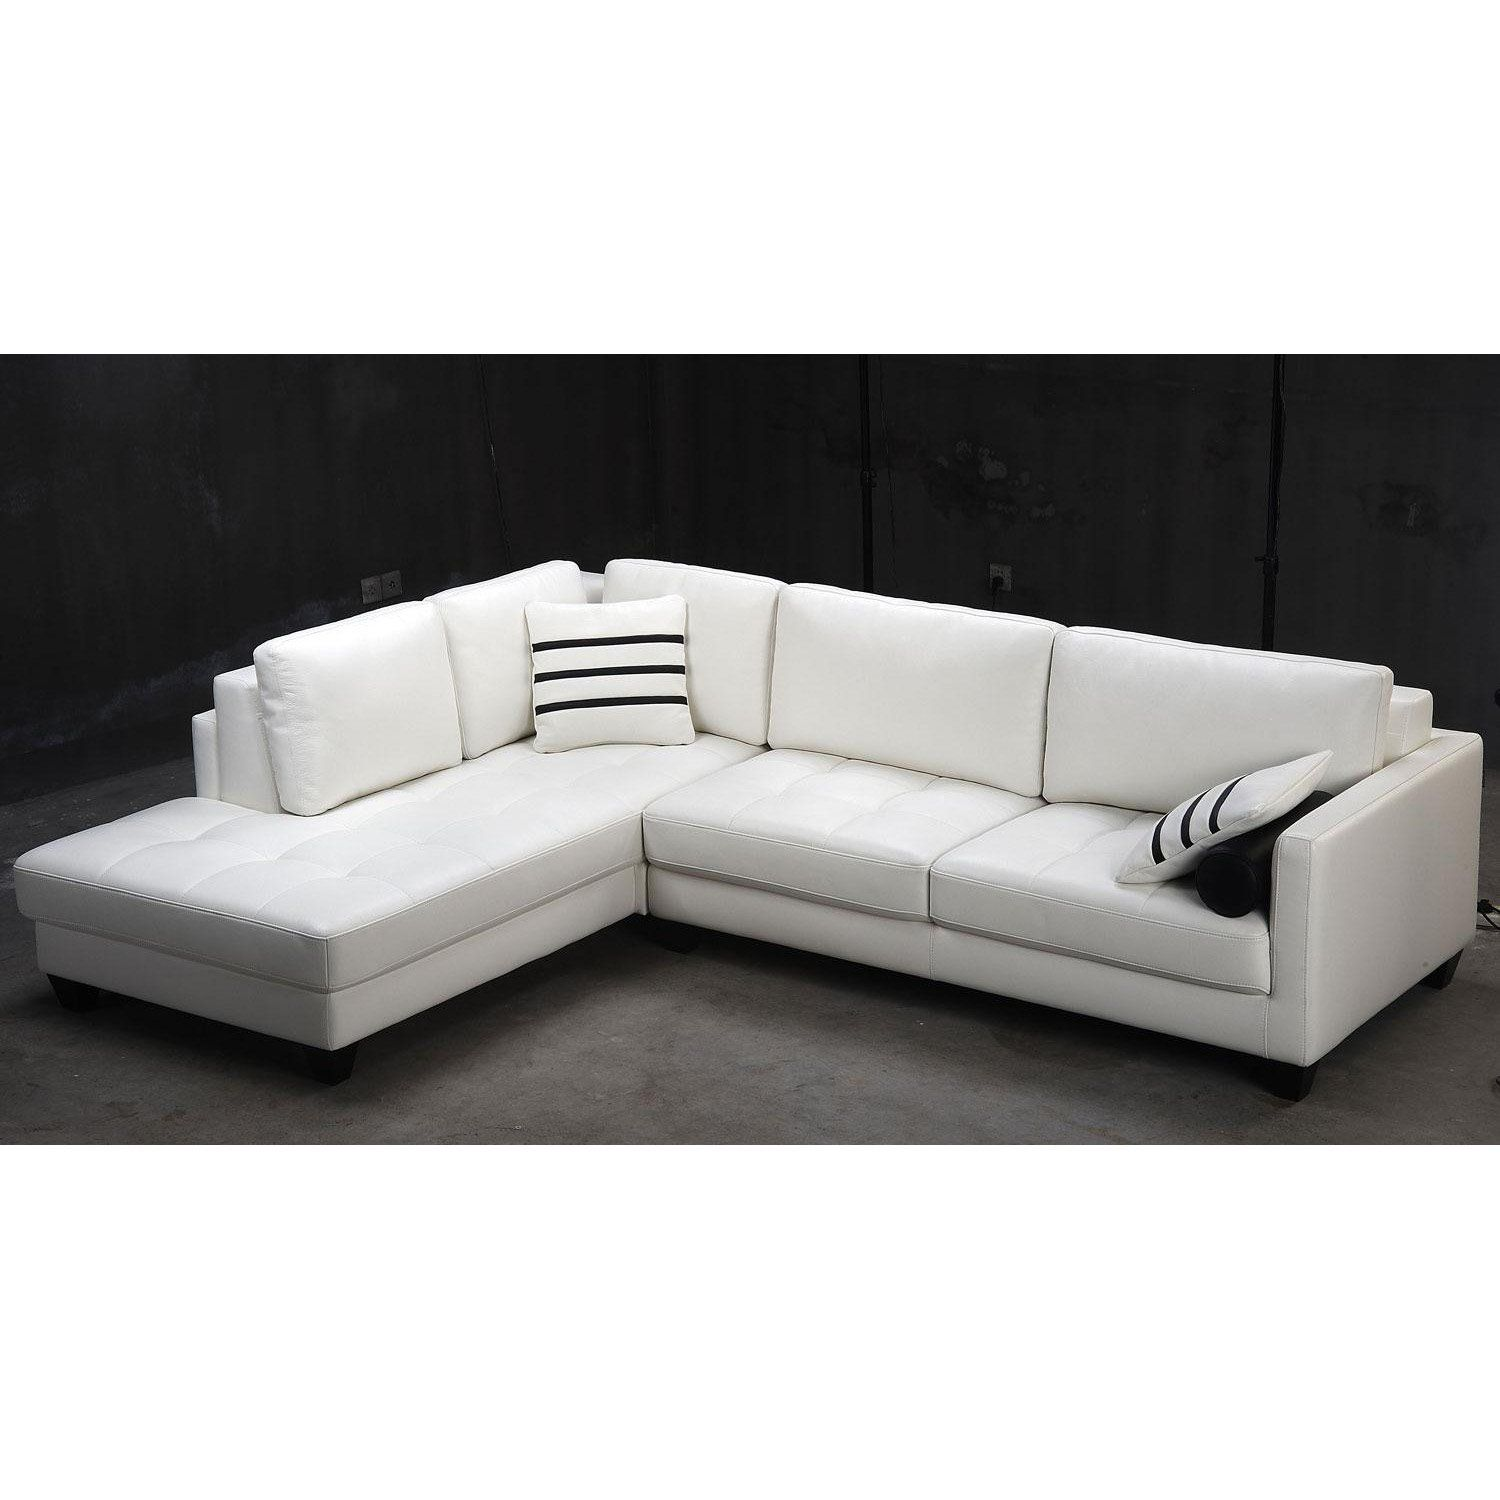 Have to have it Tosh Furniture Modern White Leather Sectional